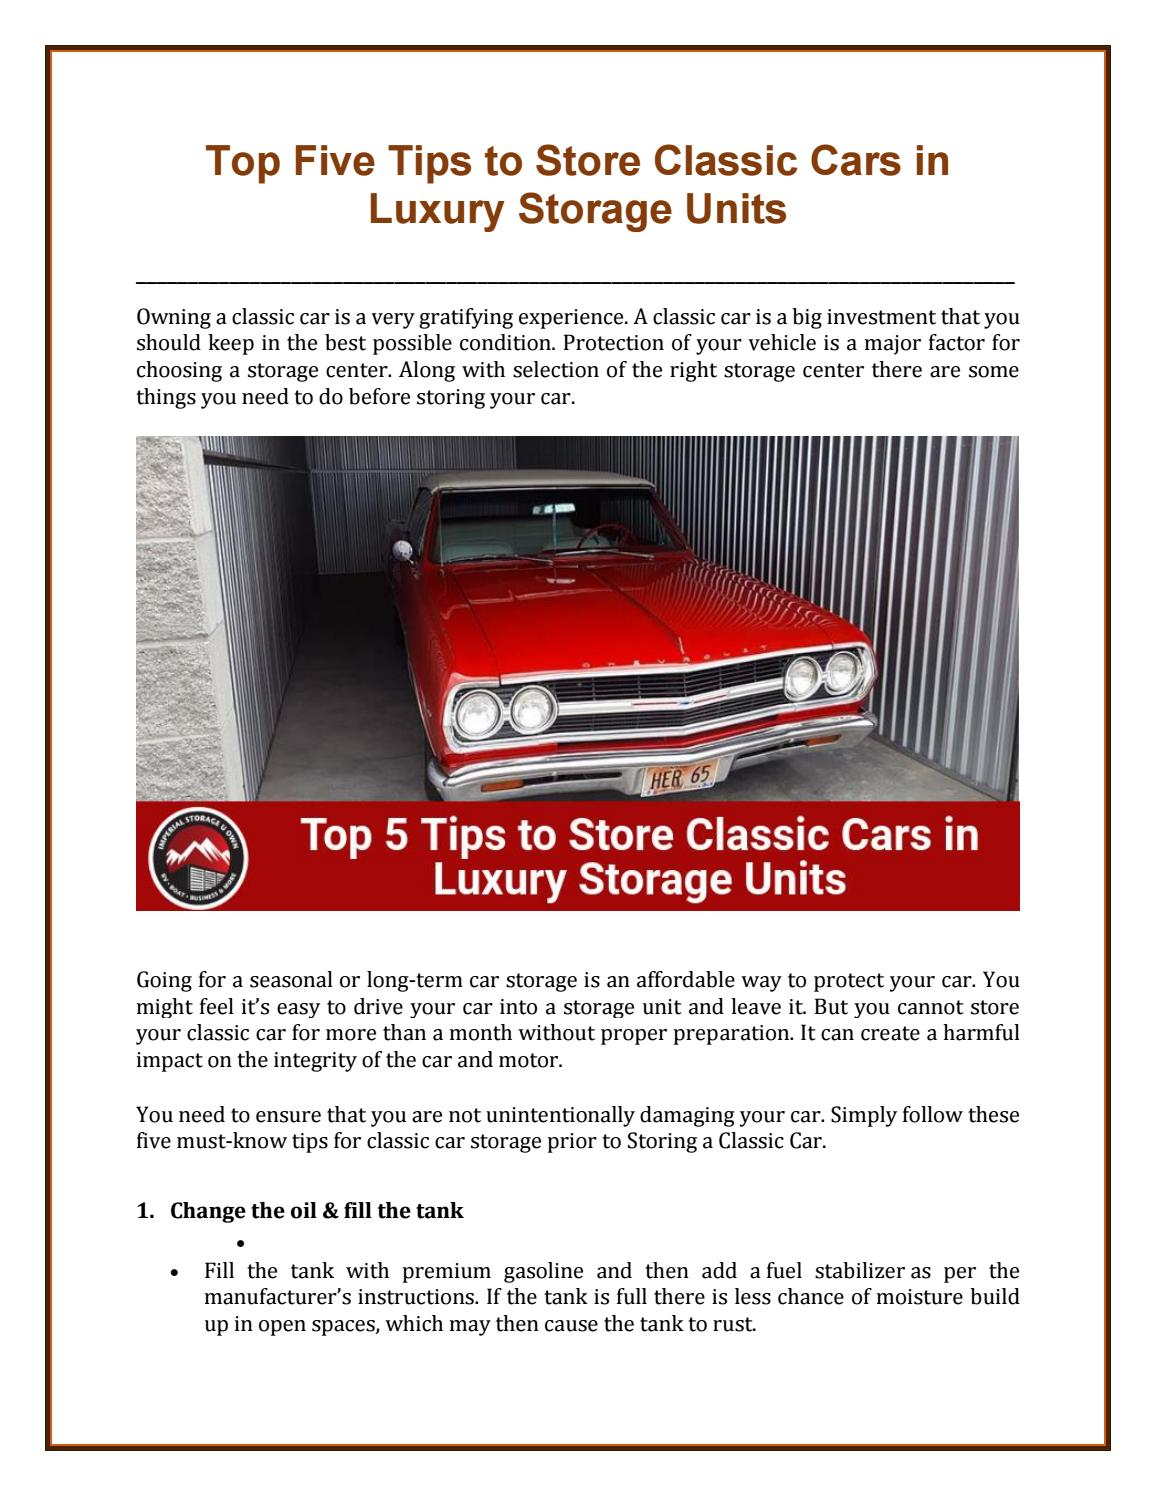 Top Five Tips to Store Classic Cars in Luxury Storage Units